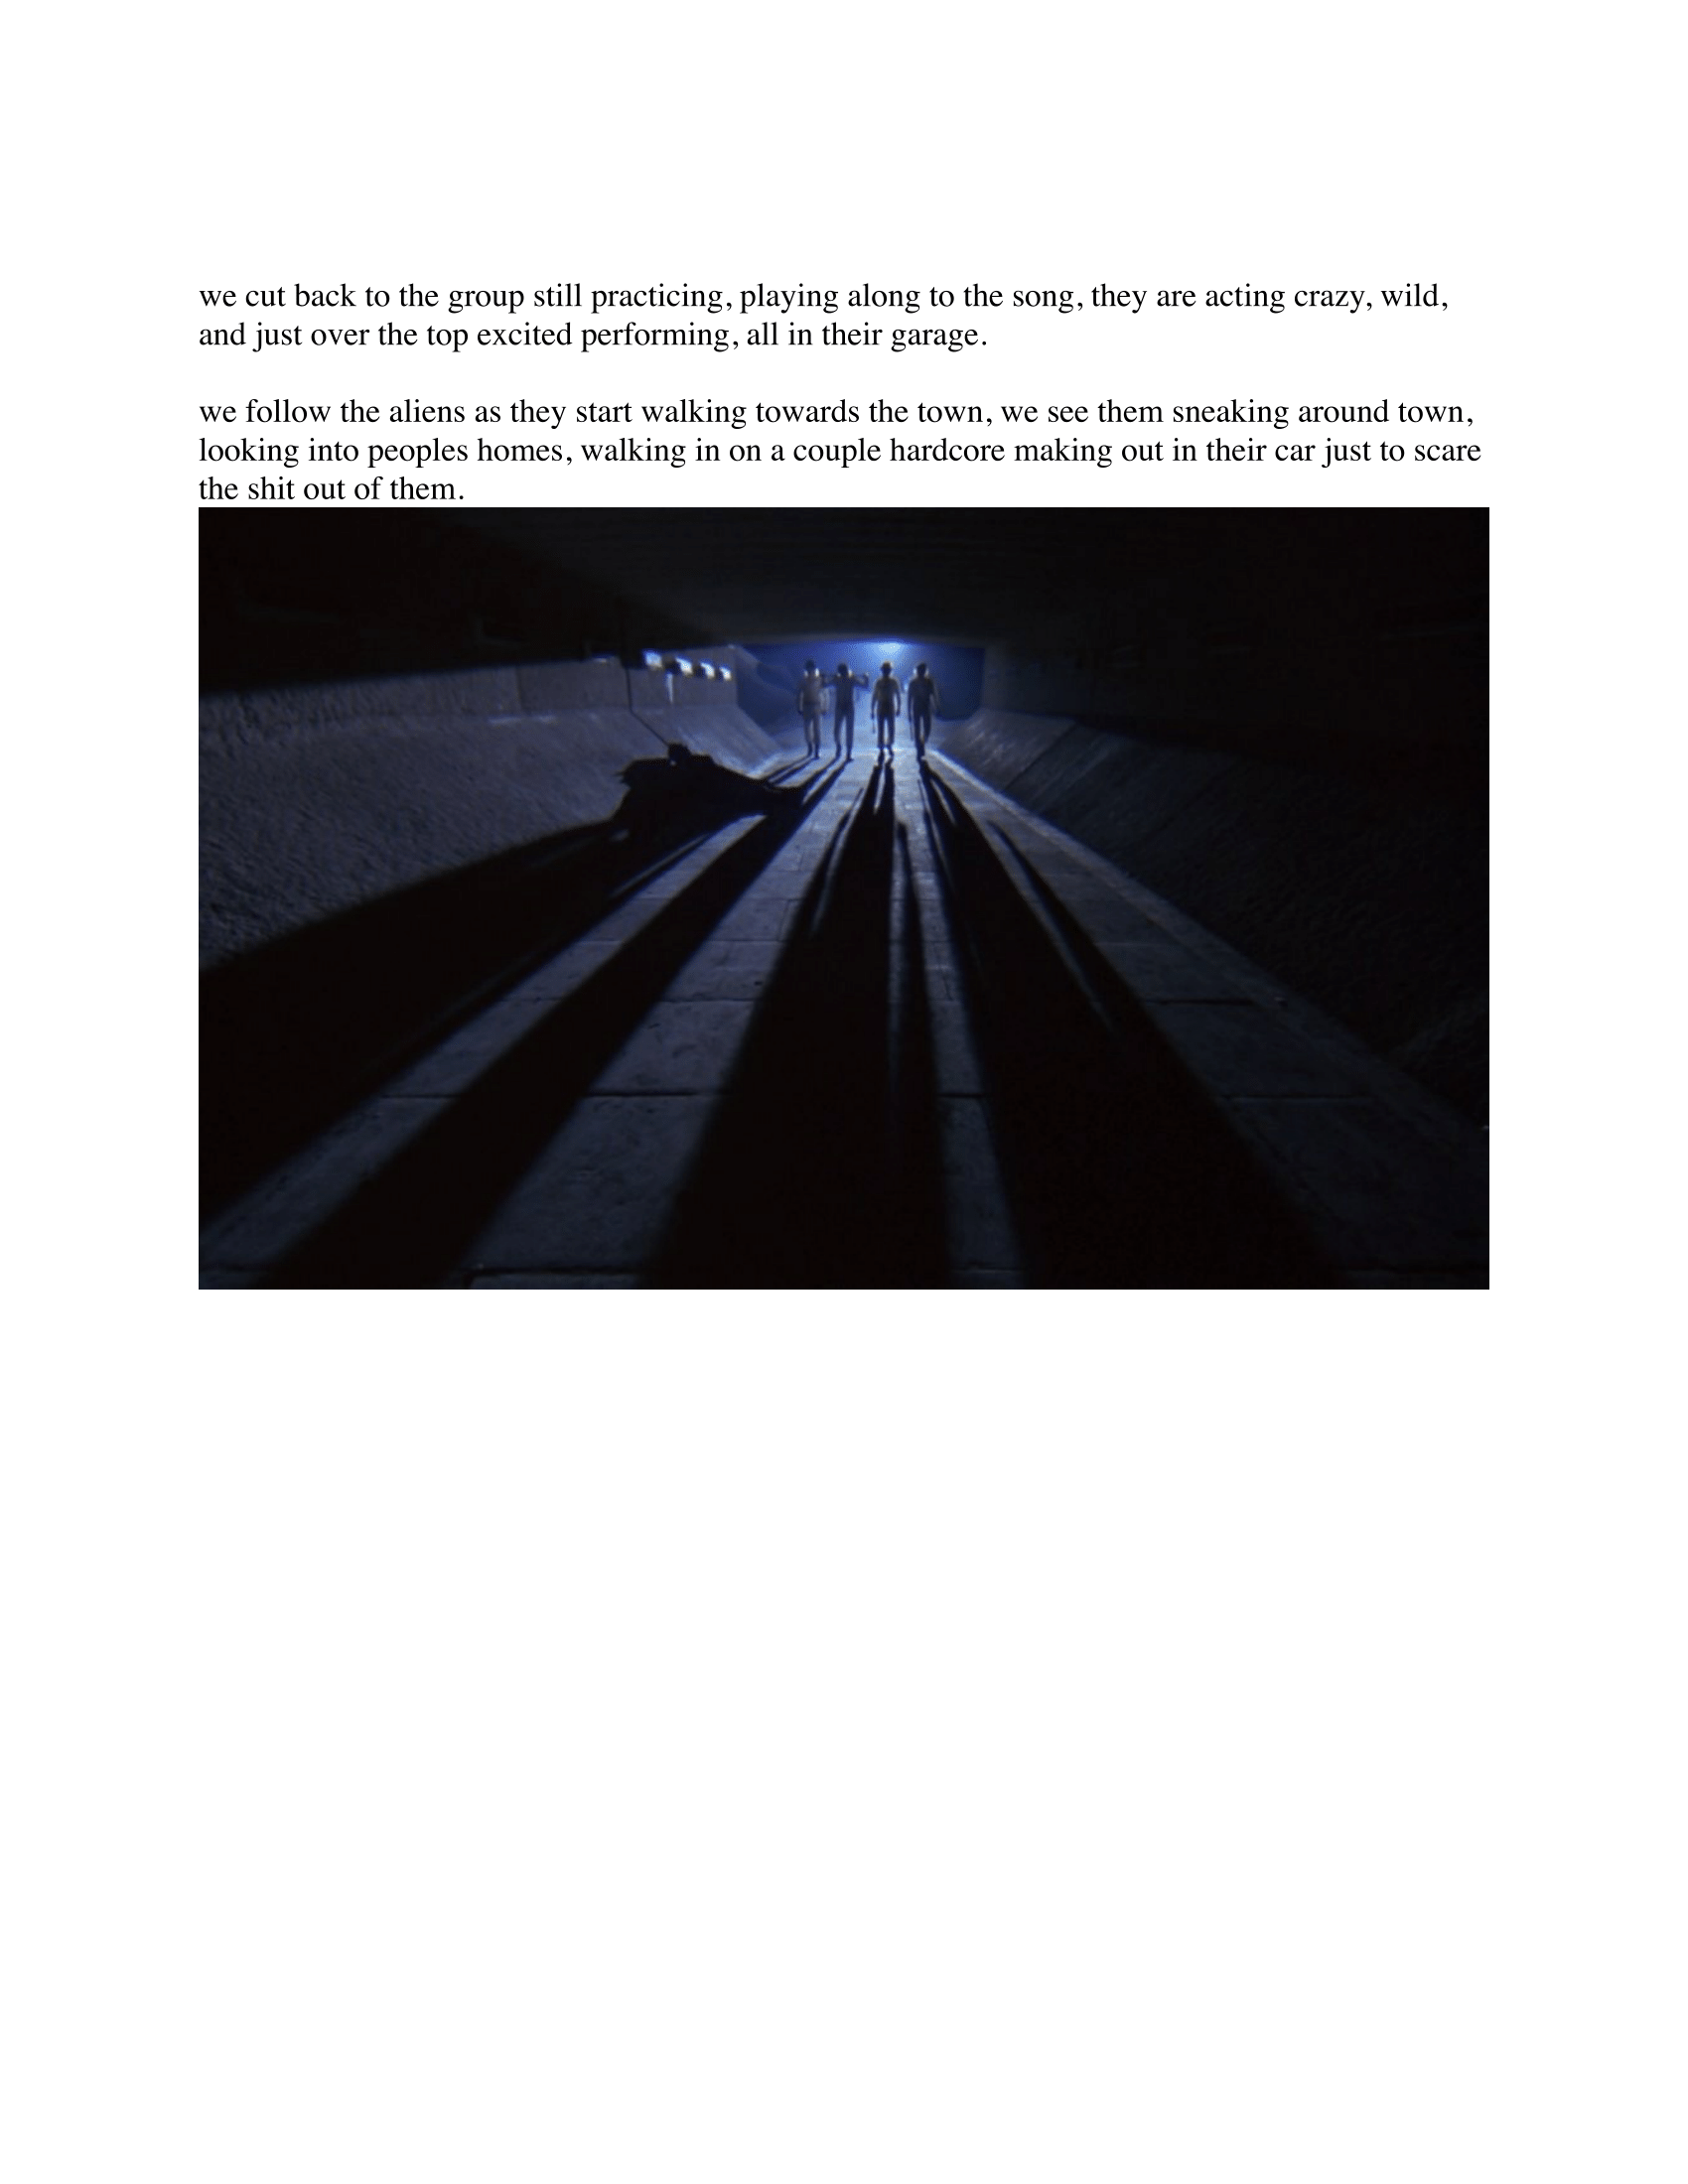 Untitled-16.png